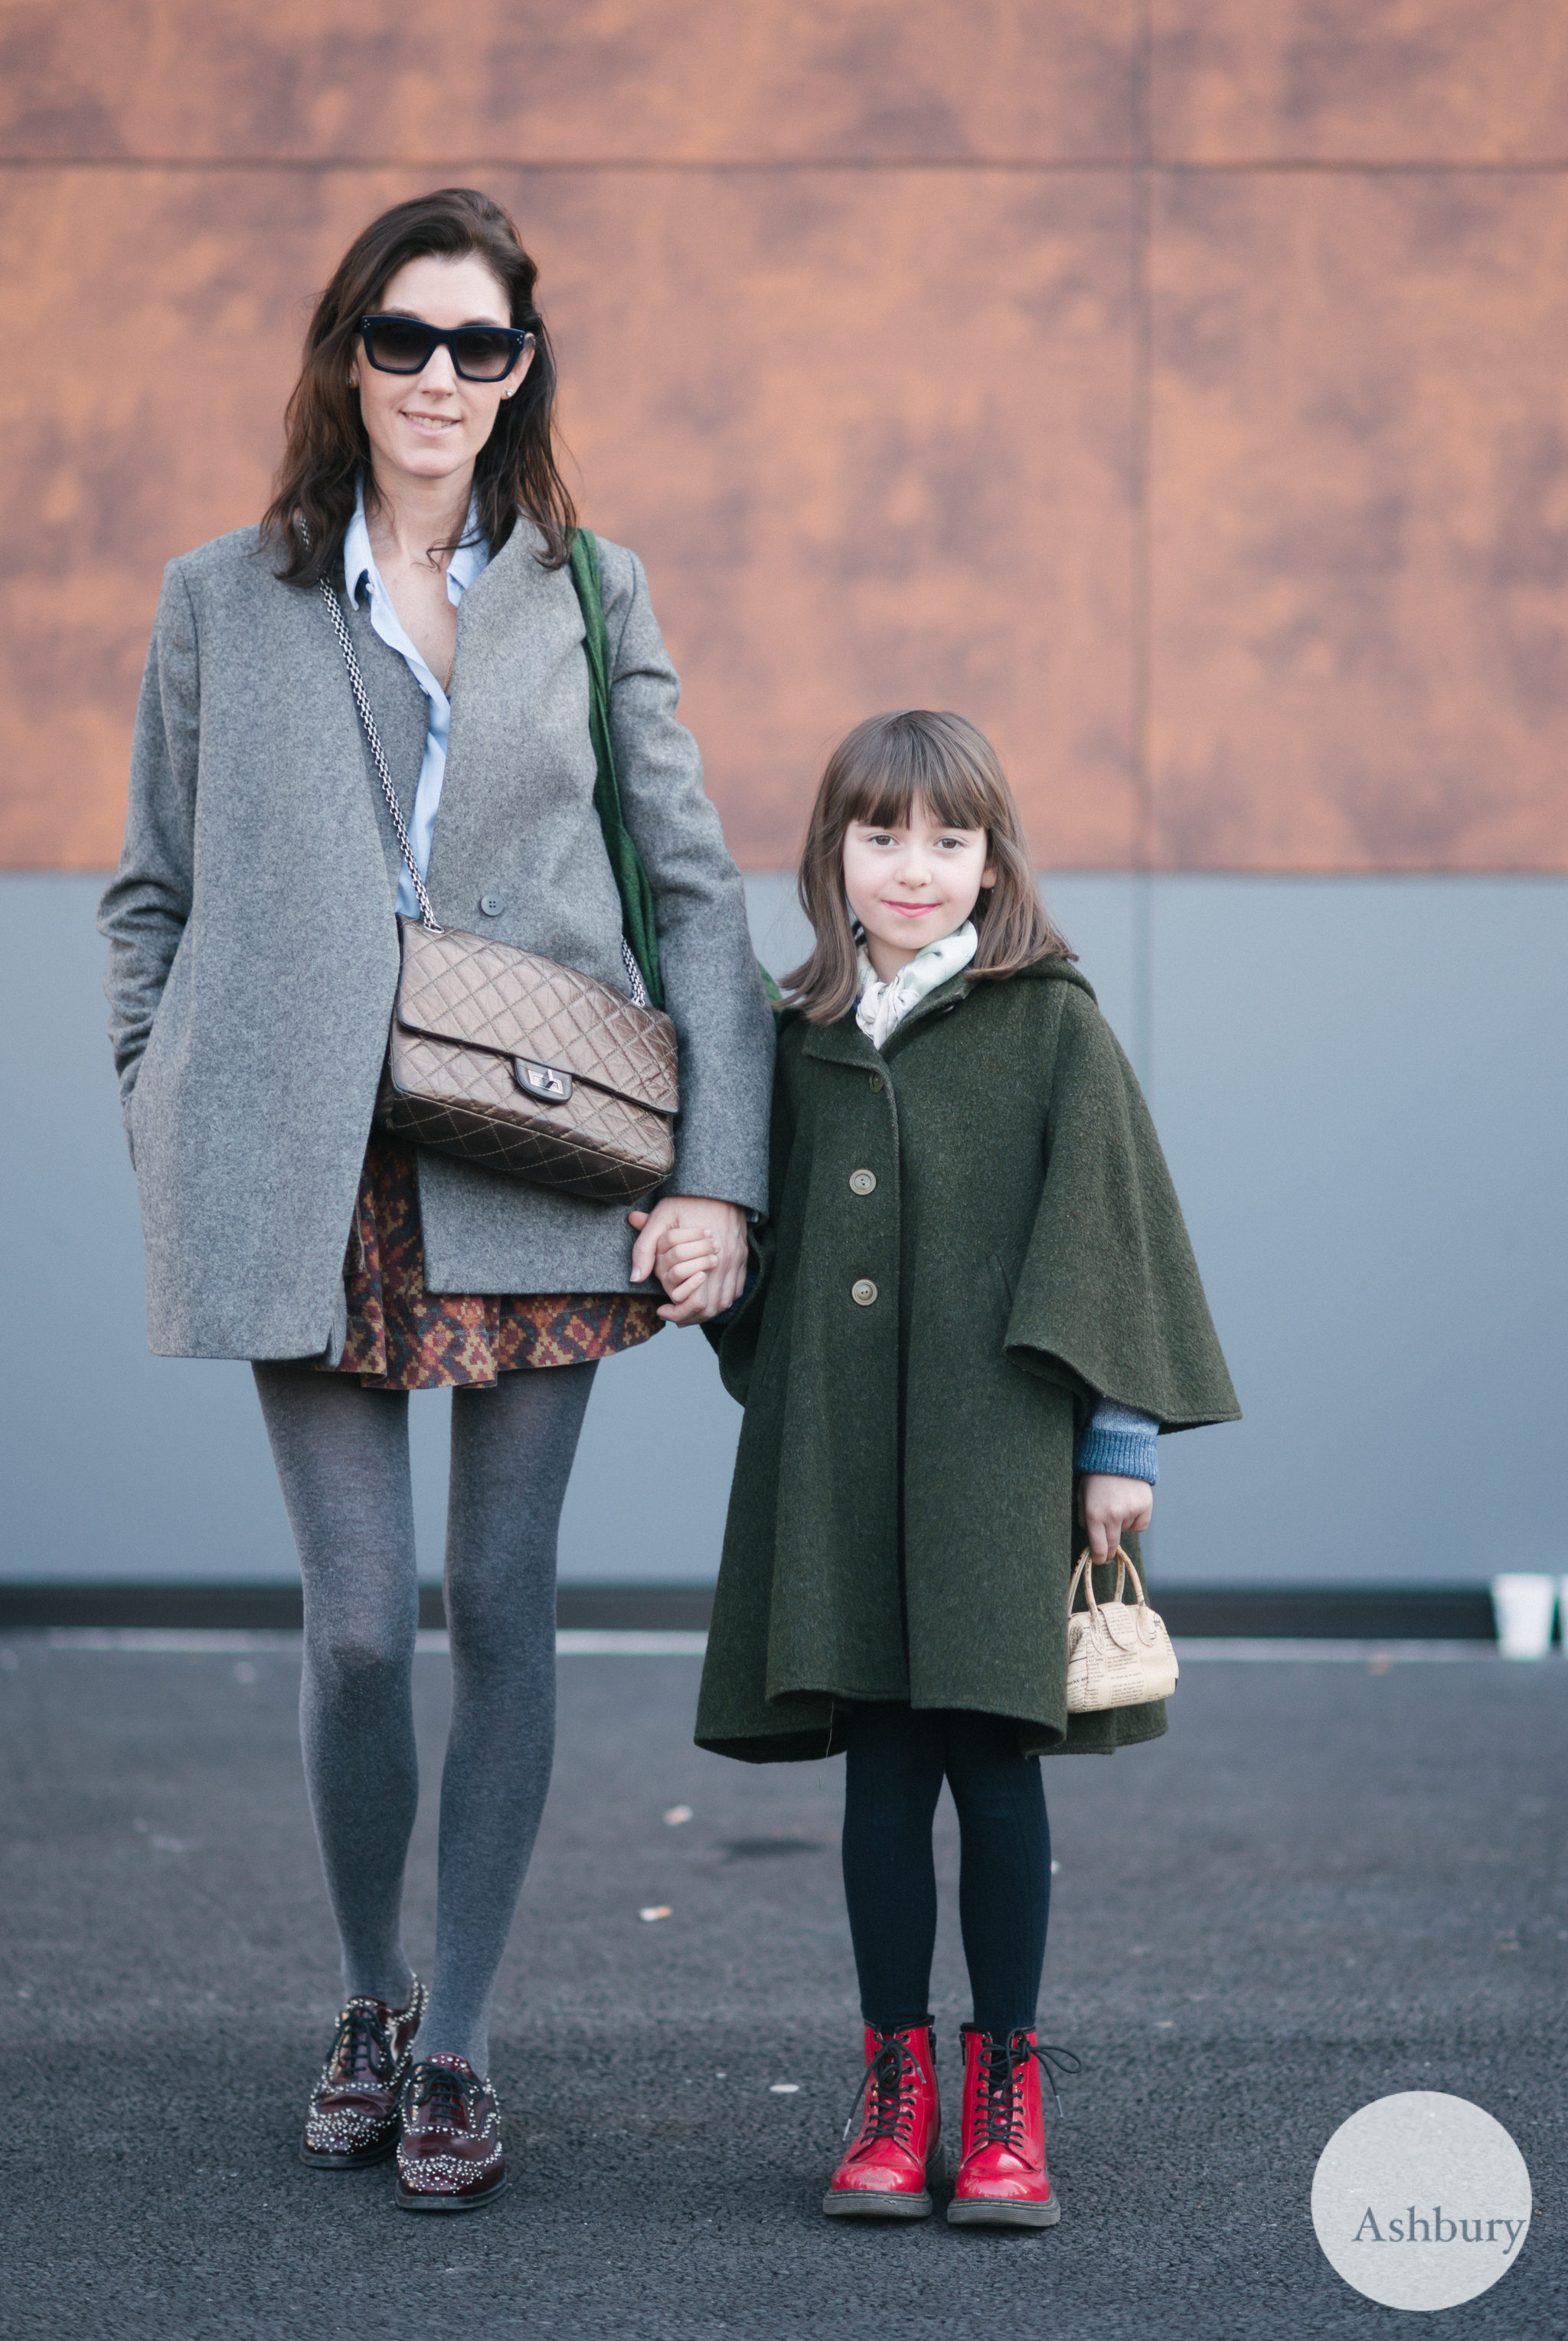 paris street style - mother and daughter